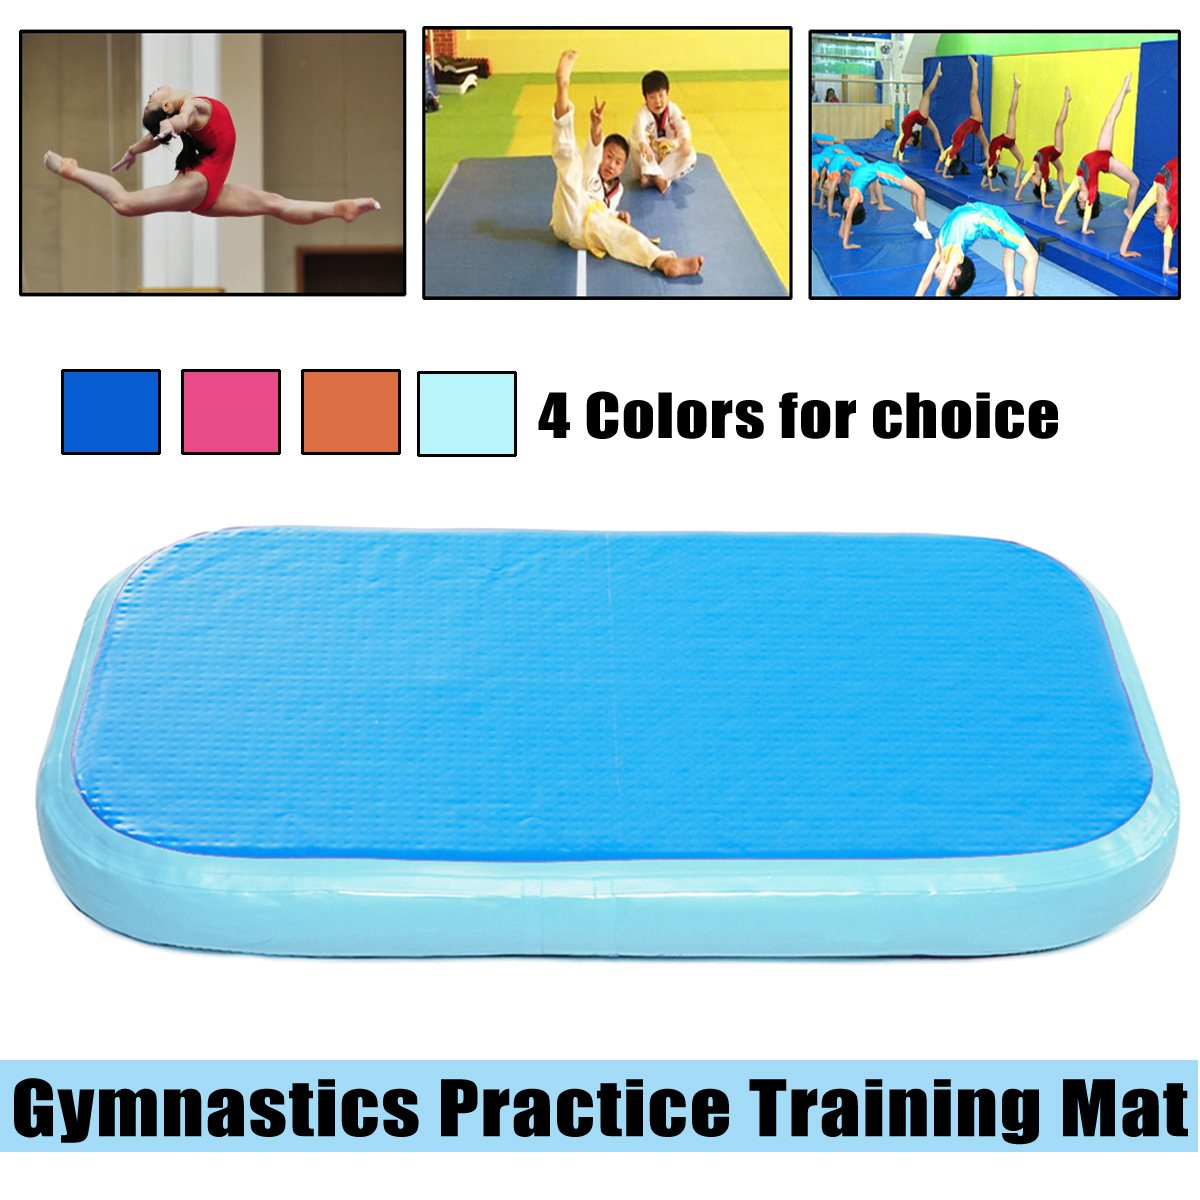 100x60x20cm Inflatable Air Tumbling Track Roller Home Training Matfor Gymnastics Gym Exercise Mat Air Track Tumbling Mat gymnastics mat thick four folding panel fitness exercise 2 4mx1 2mx3cm